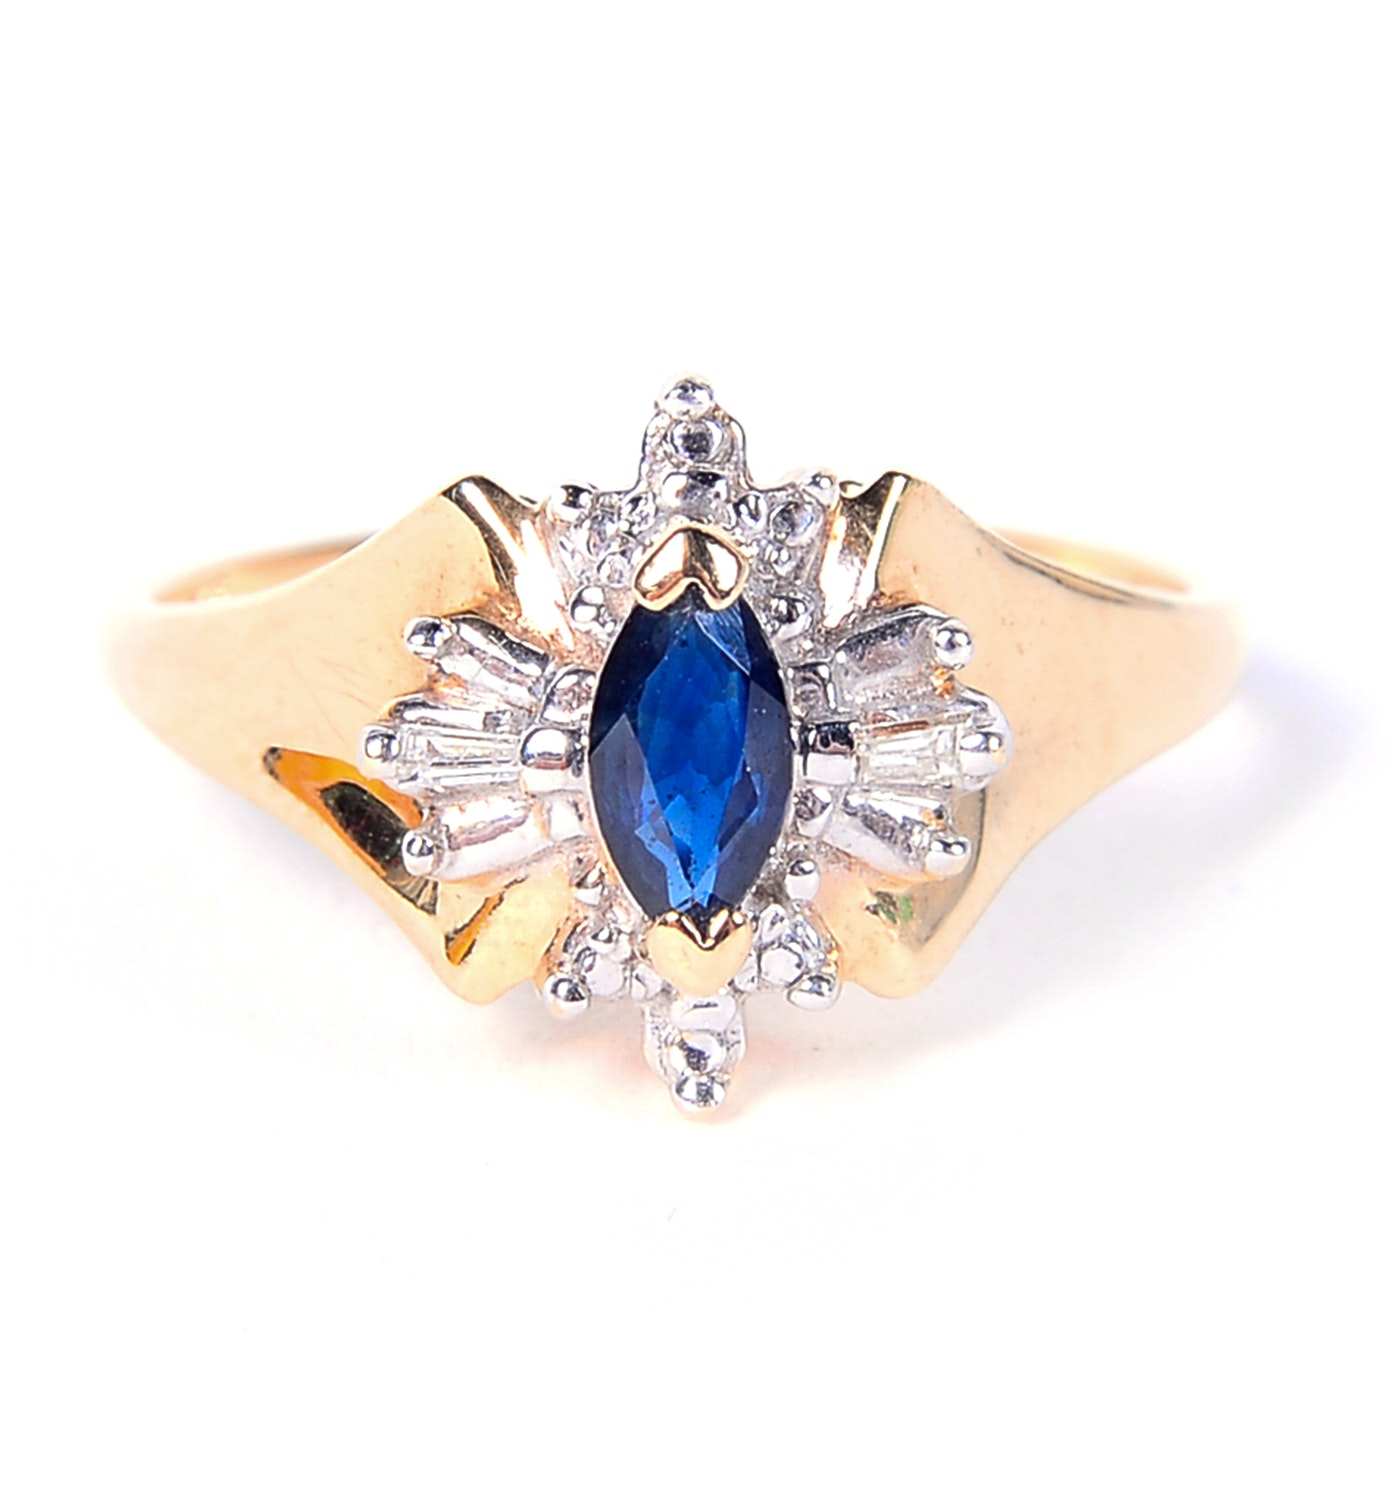 14K Yellow Gold, Sapphire and Diamond Ring